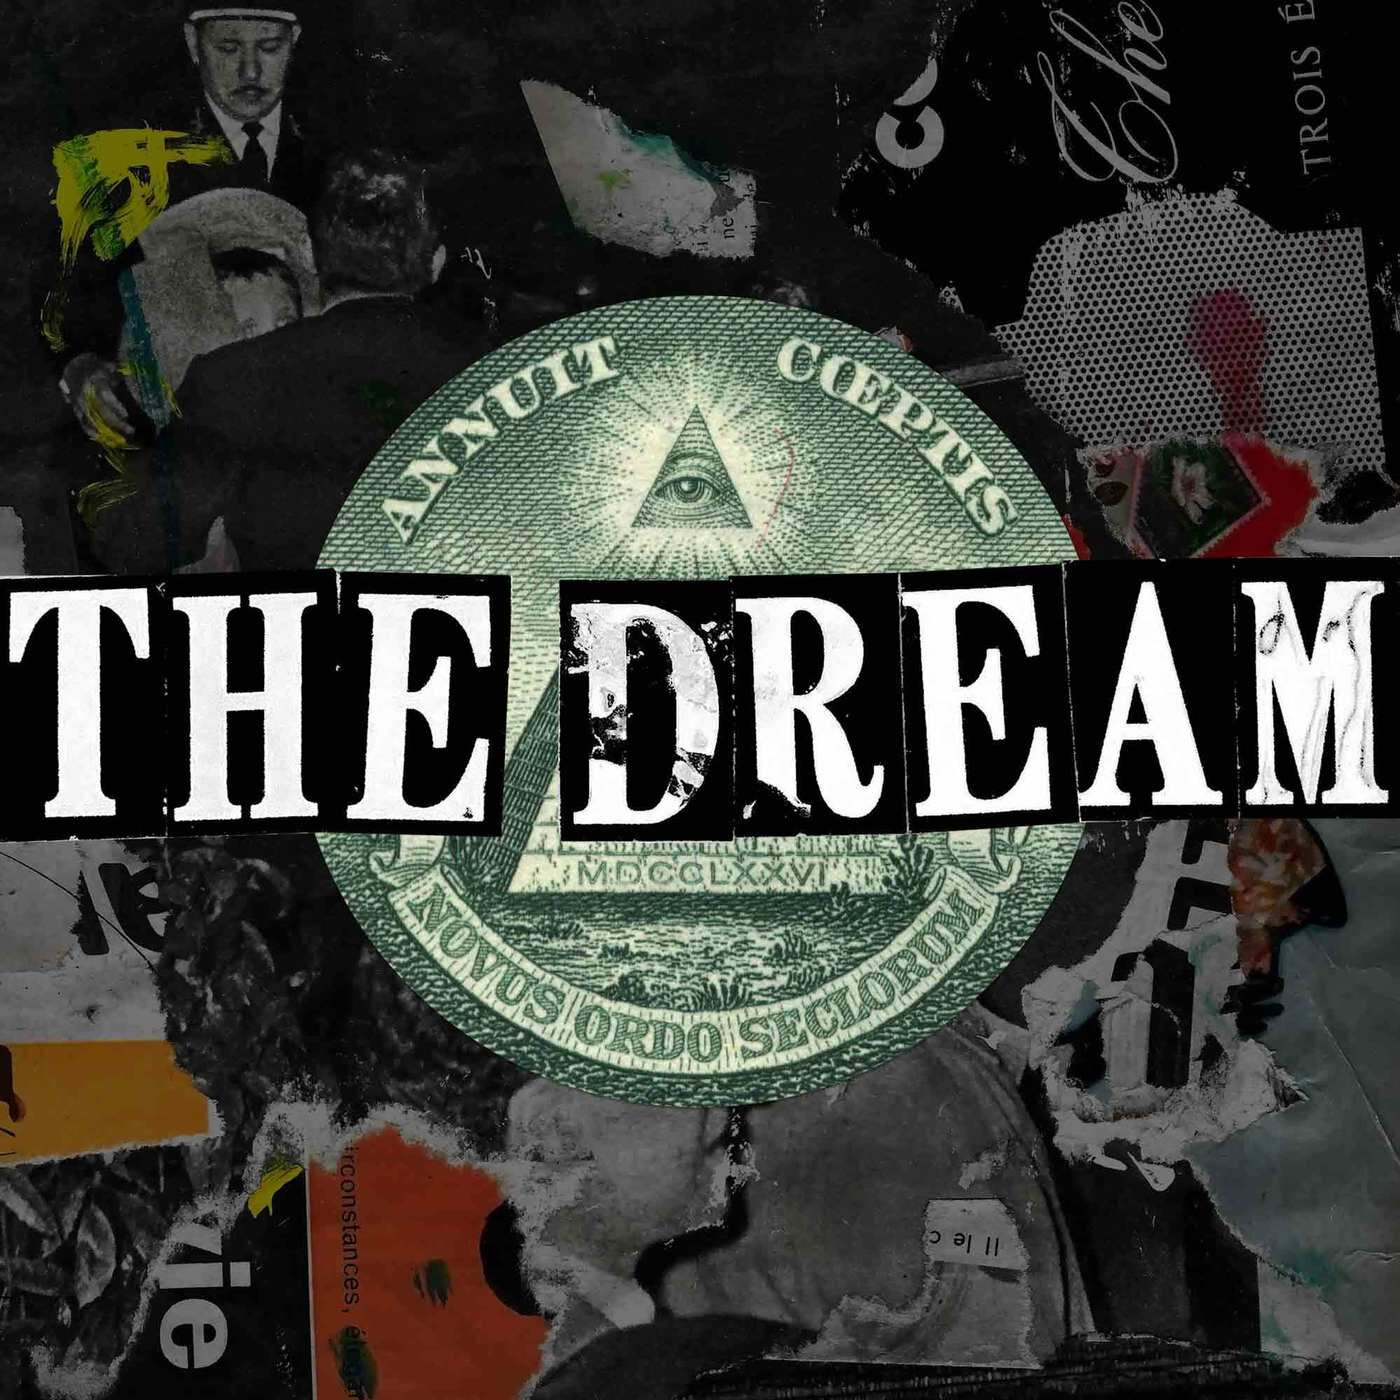 6: How a Dream Becomes a Nightmare